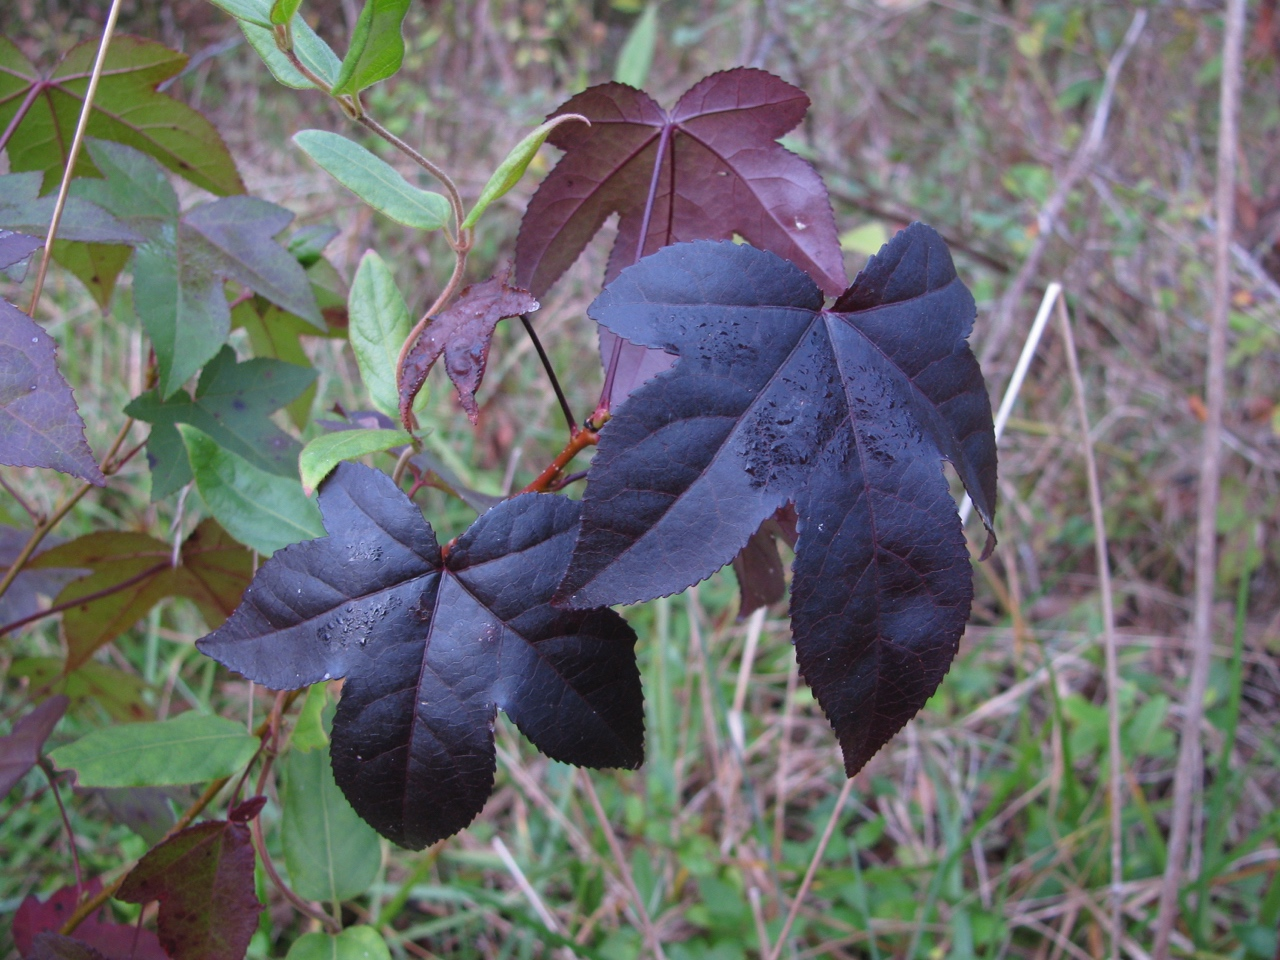 The Scientific Name is Liquidambar styraciflua. You will likely hear them called Sweet Gum, Red Gum, Sweetgum. This picture shows the One of many leaf colors in the Fall of Liquidambar styraciflua